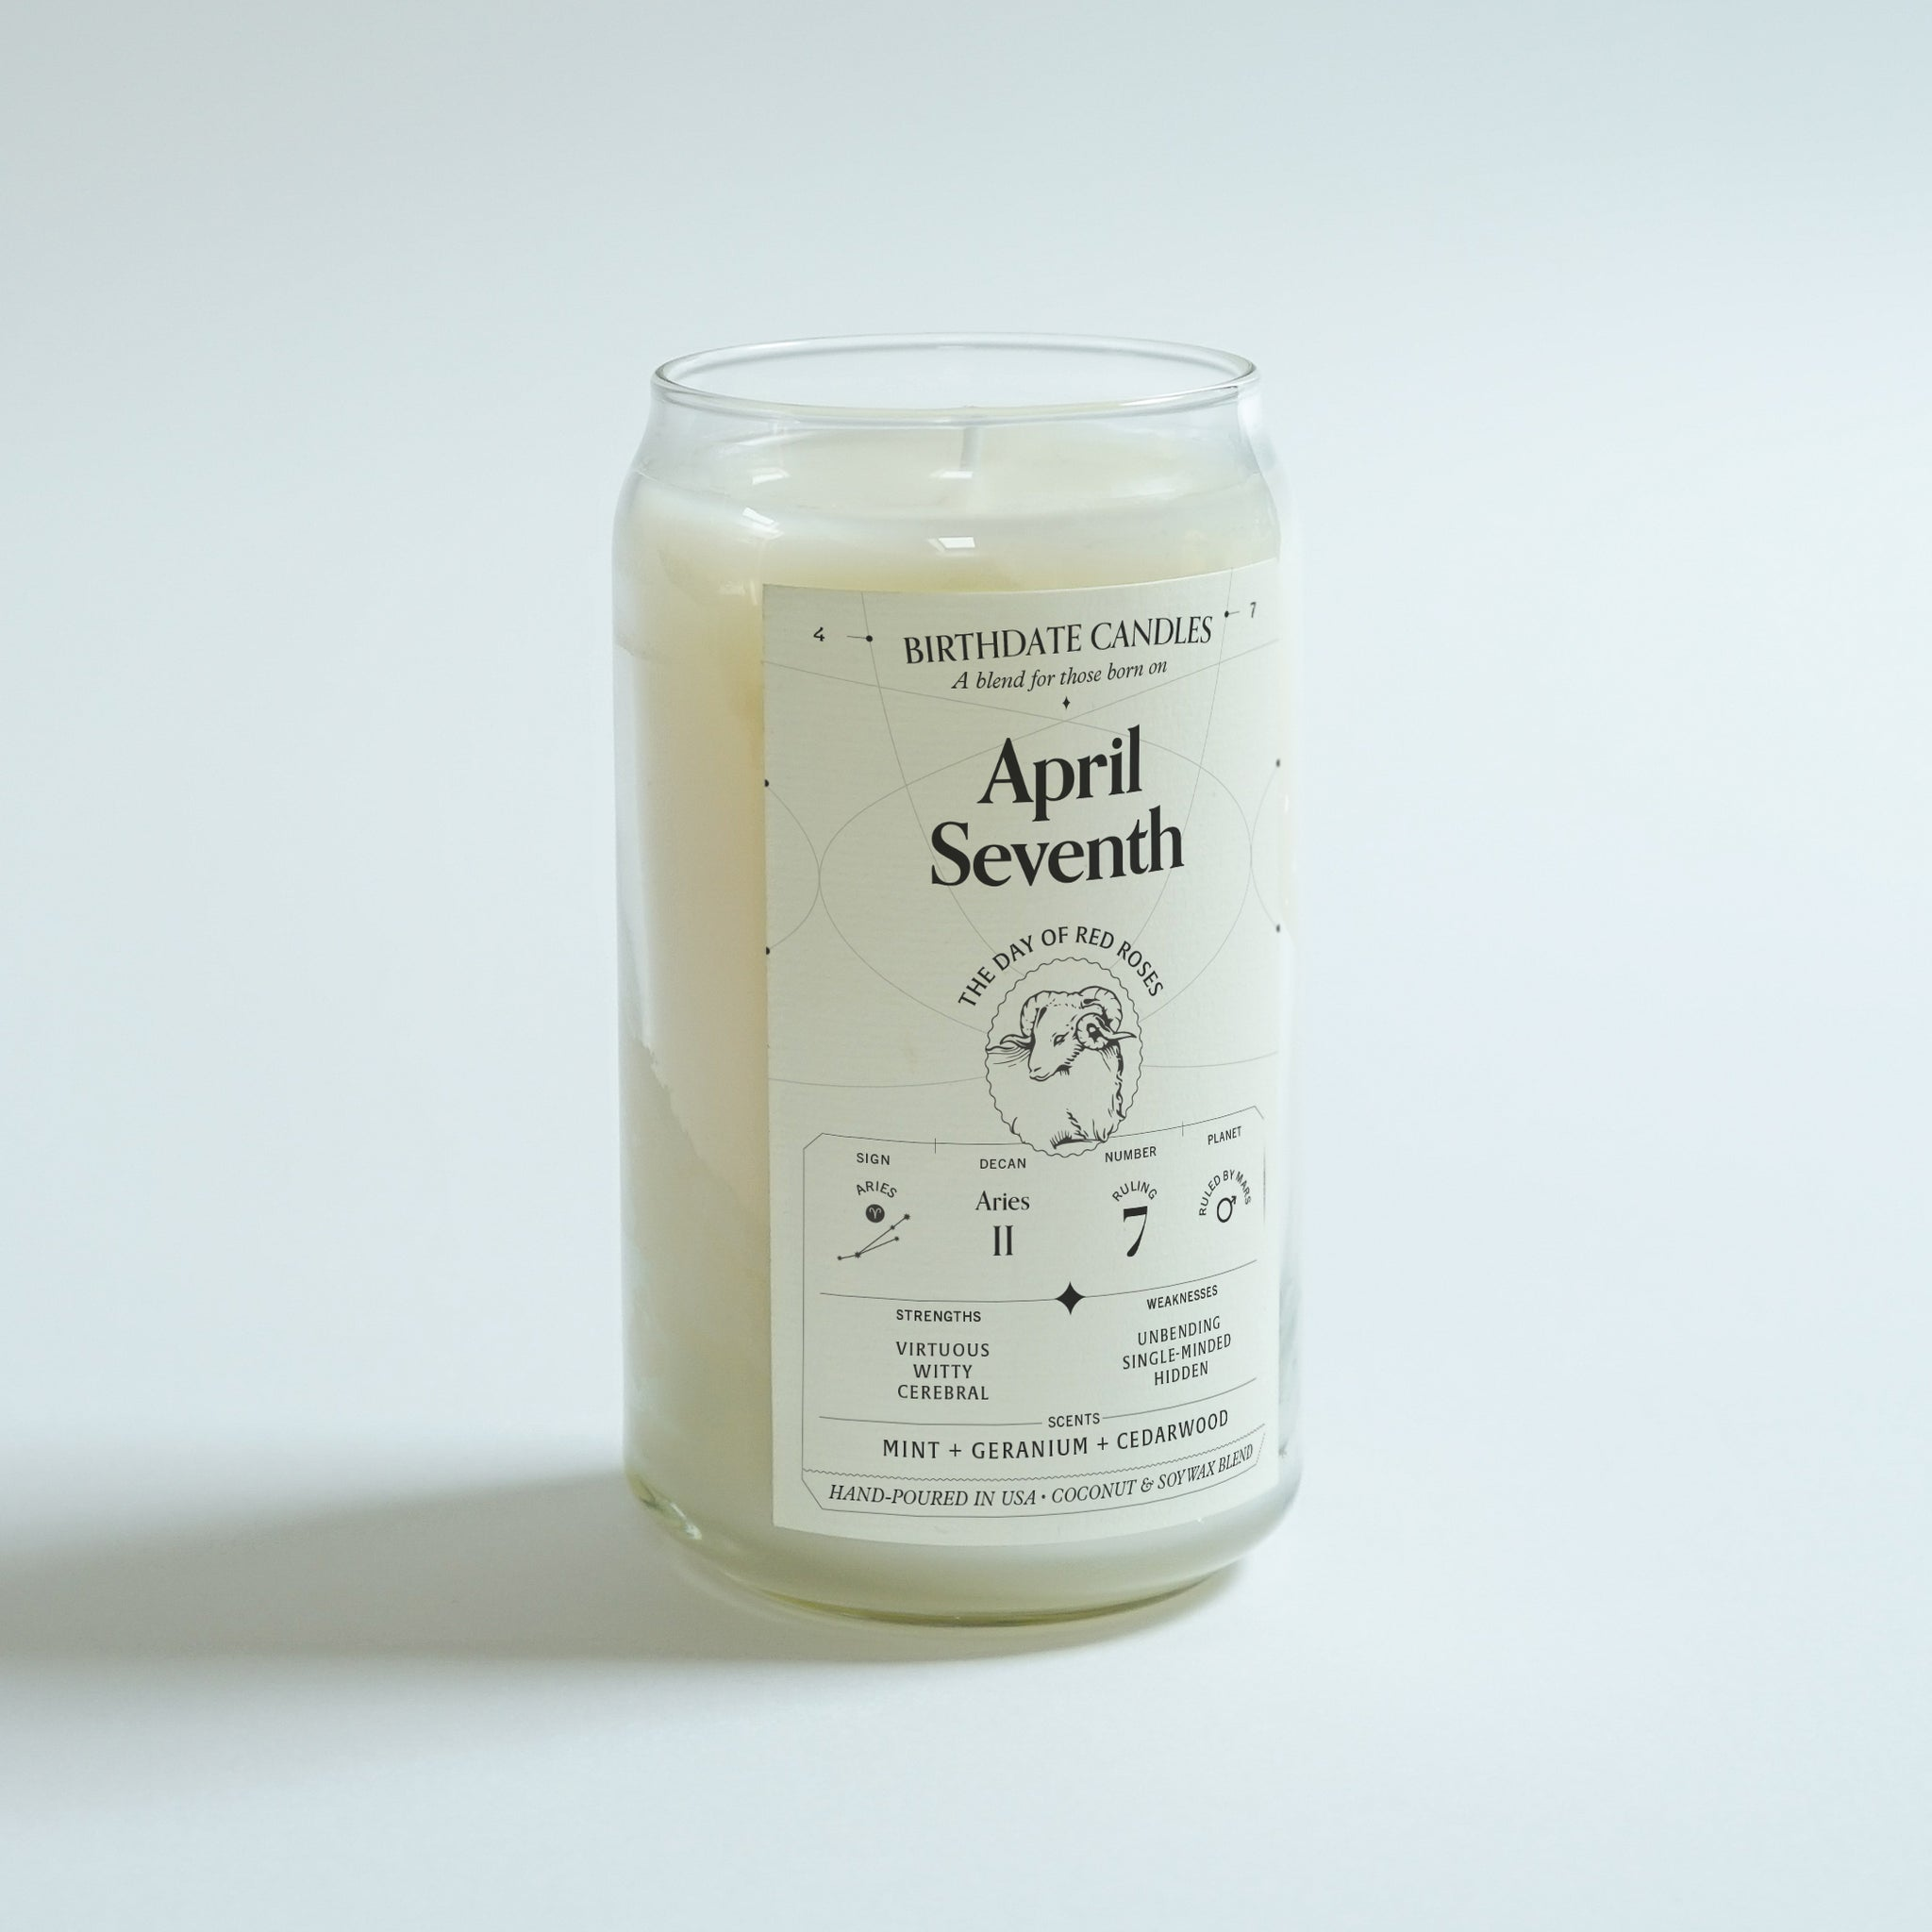 The April Seventh Candle